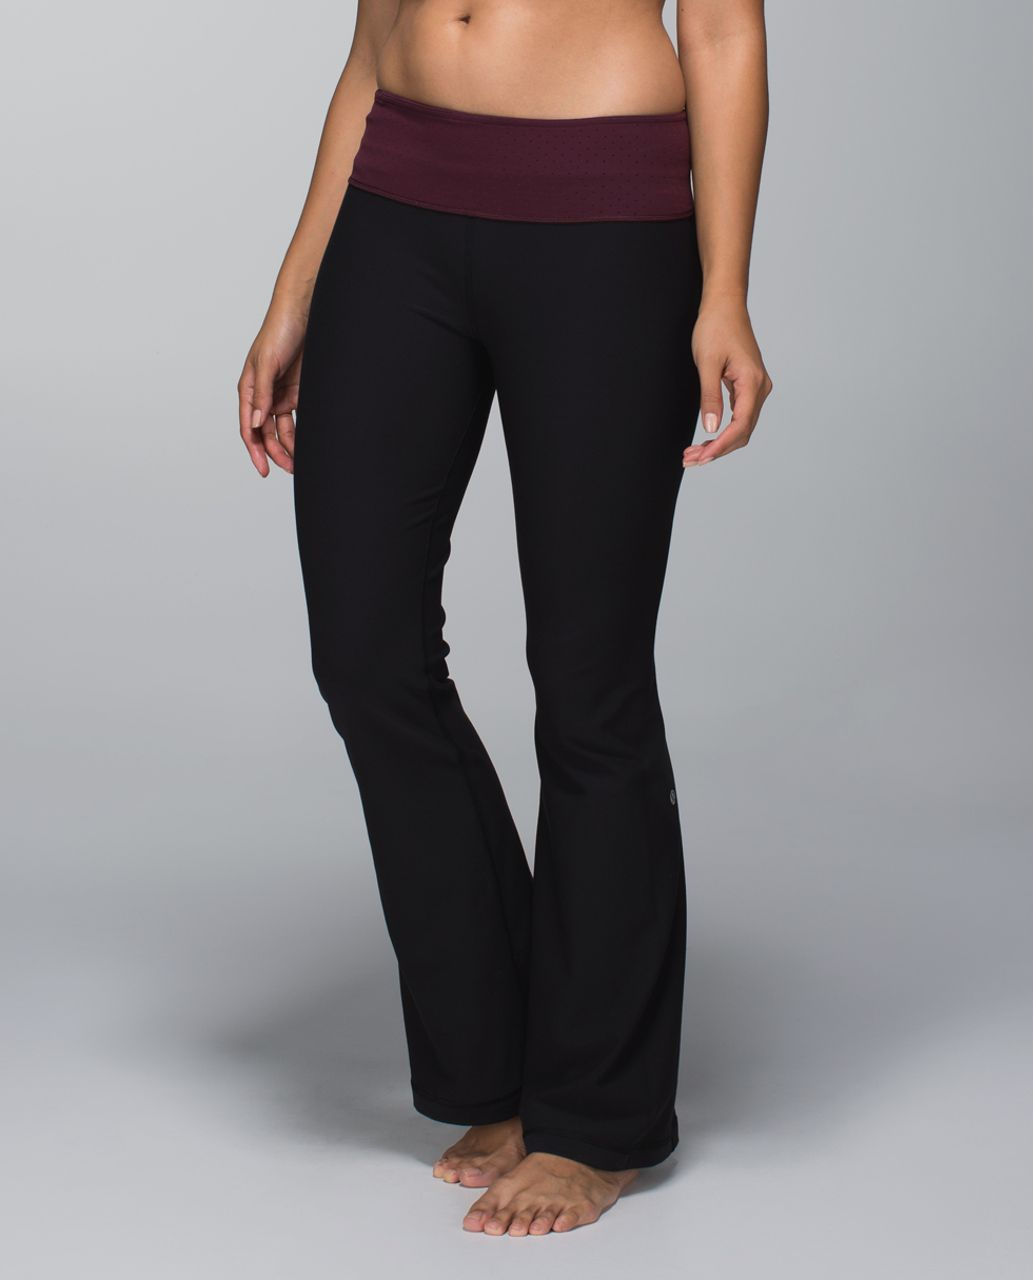 Lululemon Groove Pant *Full-On Luon (Regular) - Black / Shine Dot Bordeaux Drama / Rust Berry